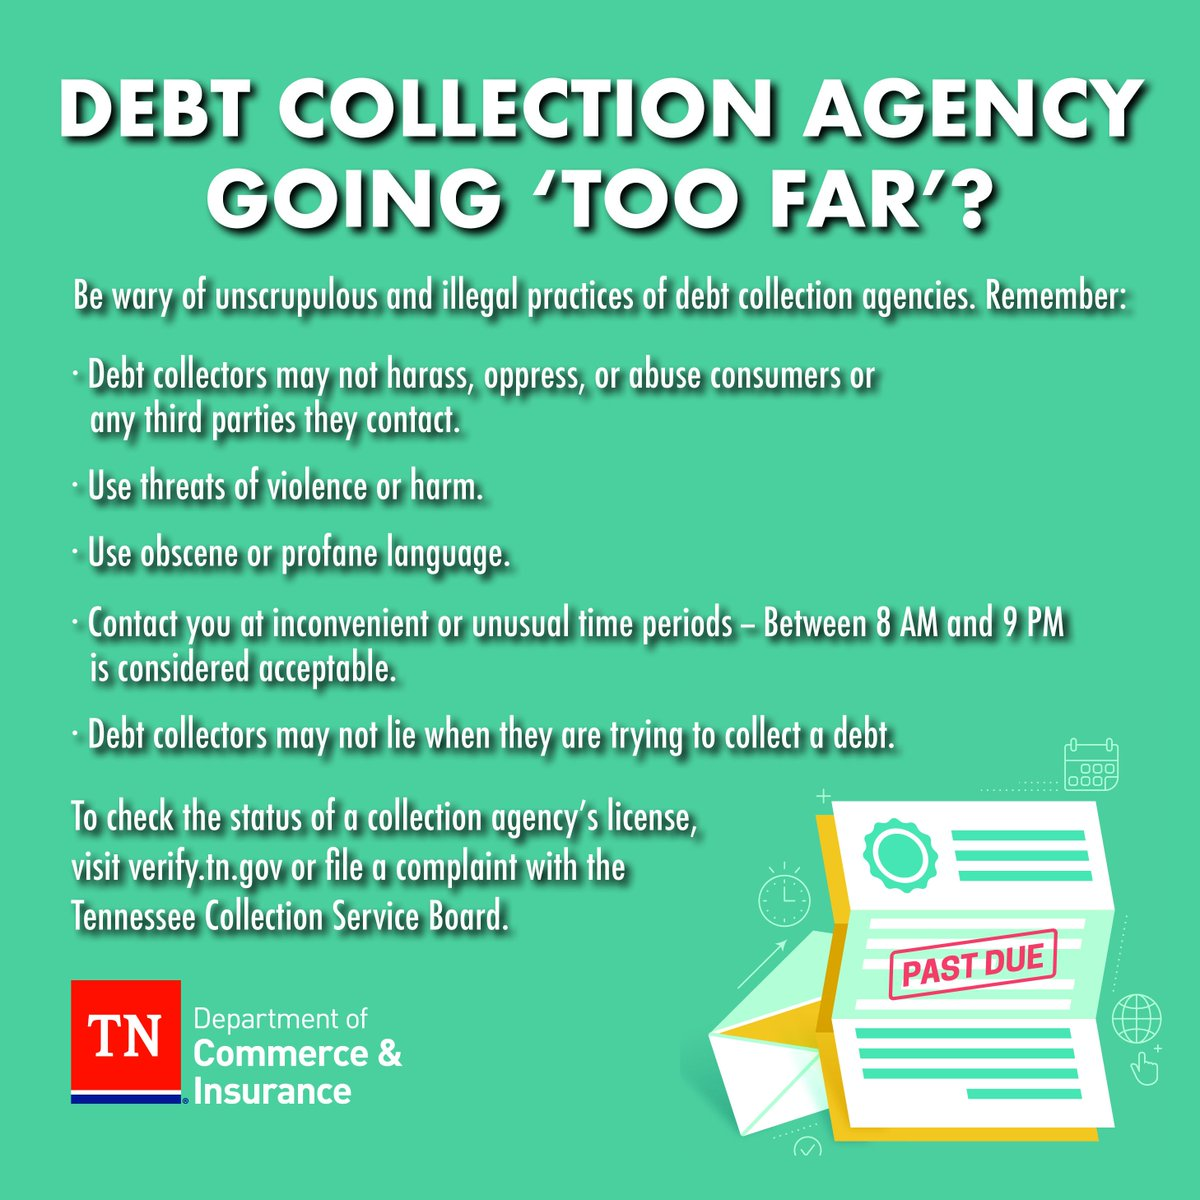 test Twitter Media - Complaints about debt collectors are Tennesseans' top complaint area according to @FTC. Our Division of Consumer Affairs and the state Collections Board reminds Tennesseans to be wary of unscrupulous & illegal practices. #consumerprotection https://t.co/0xnYIuWIcY https://t.co/1aWH0drkhN